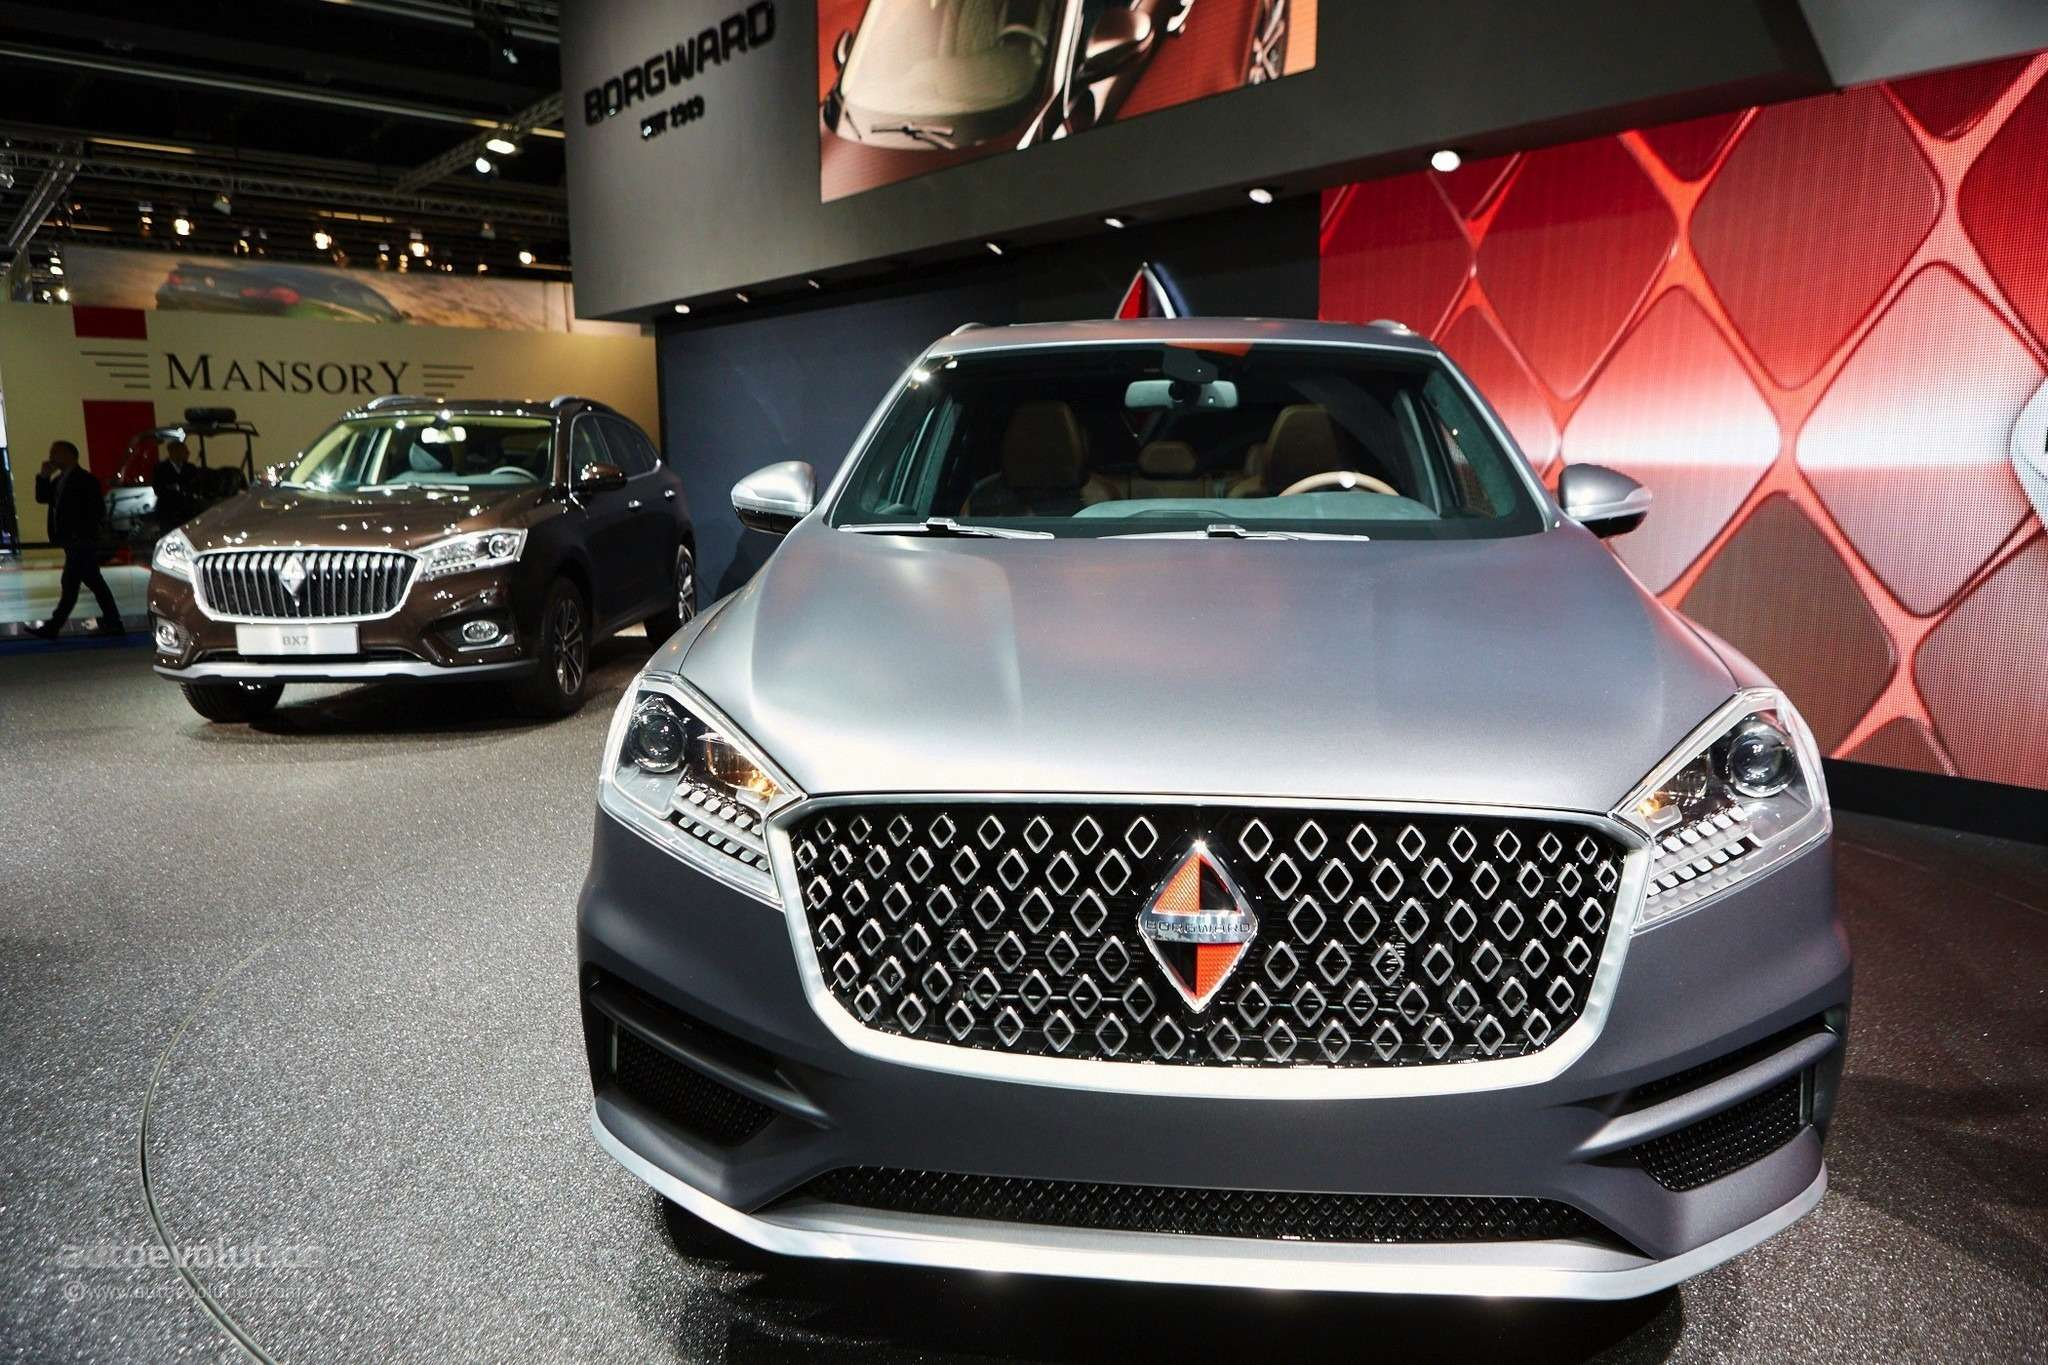 borgward-is-officially-back-with-its-bx7-suv-in-frankfurt-live-photos_21